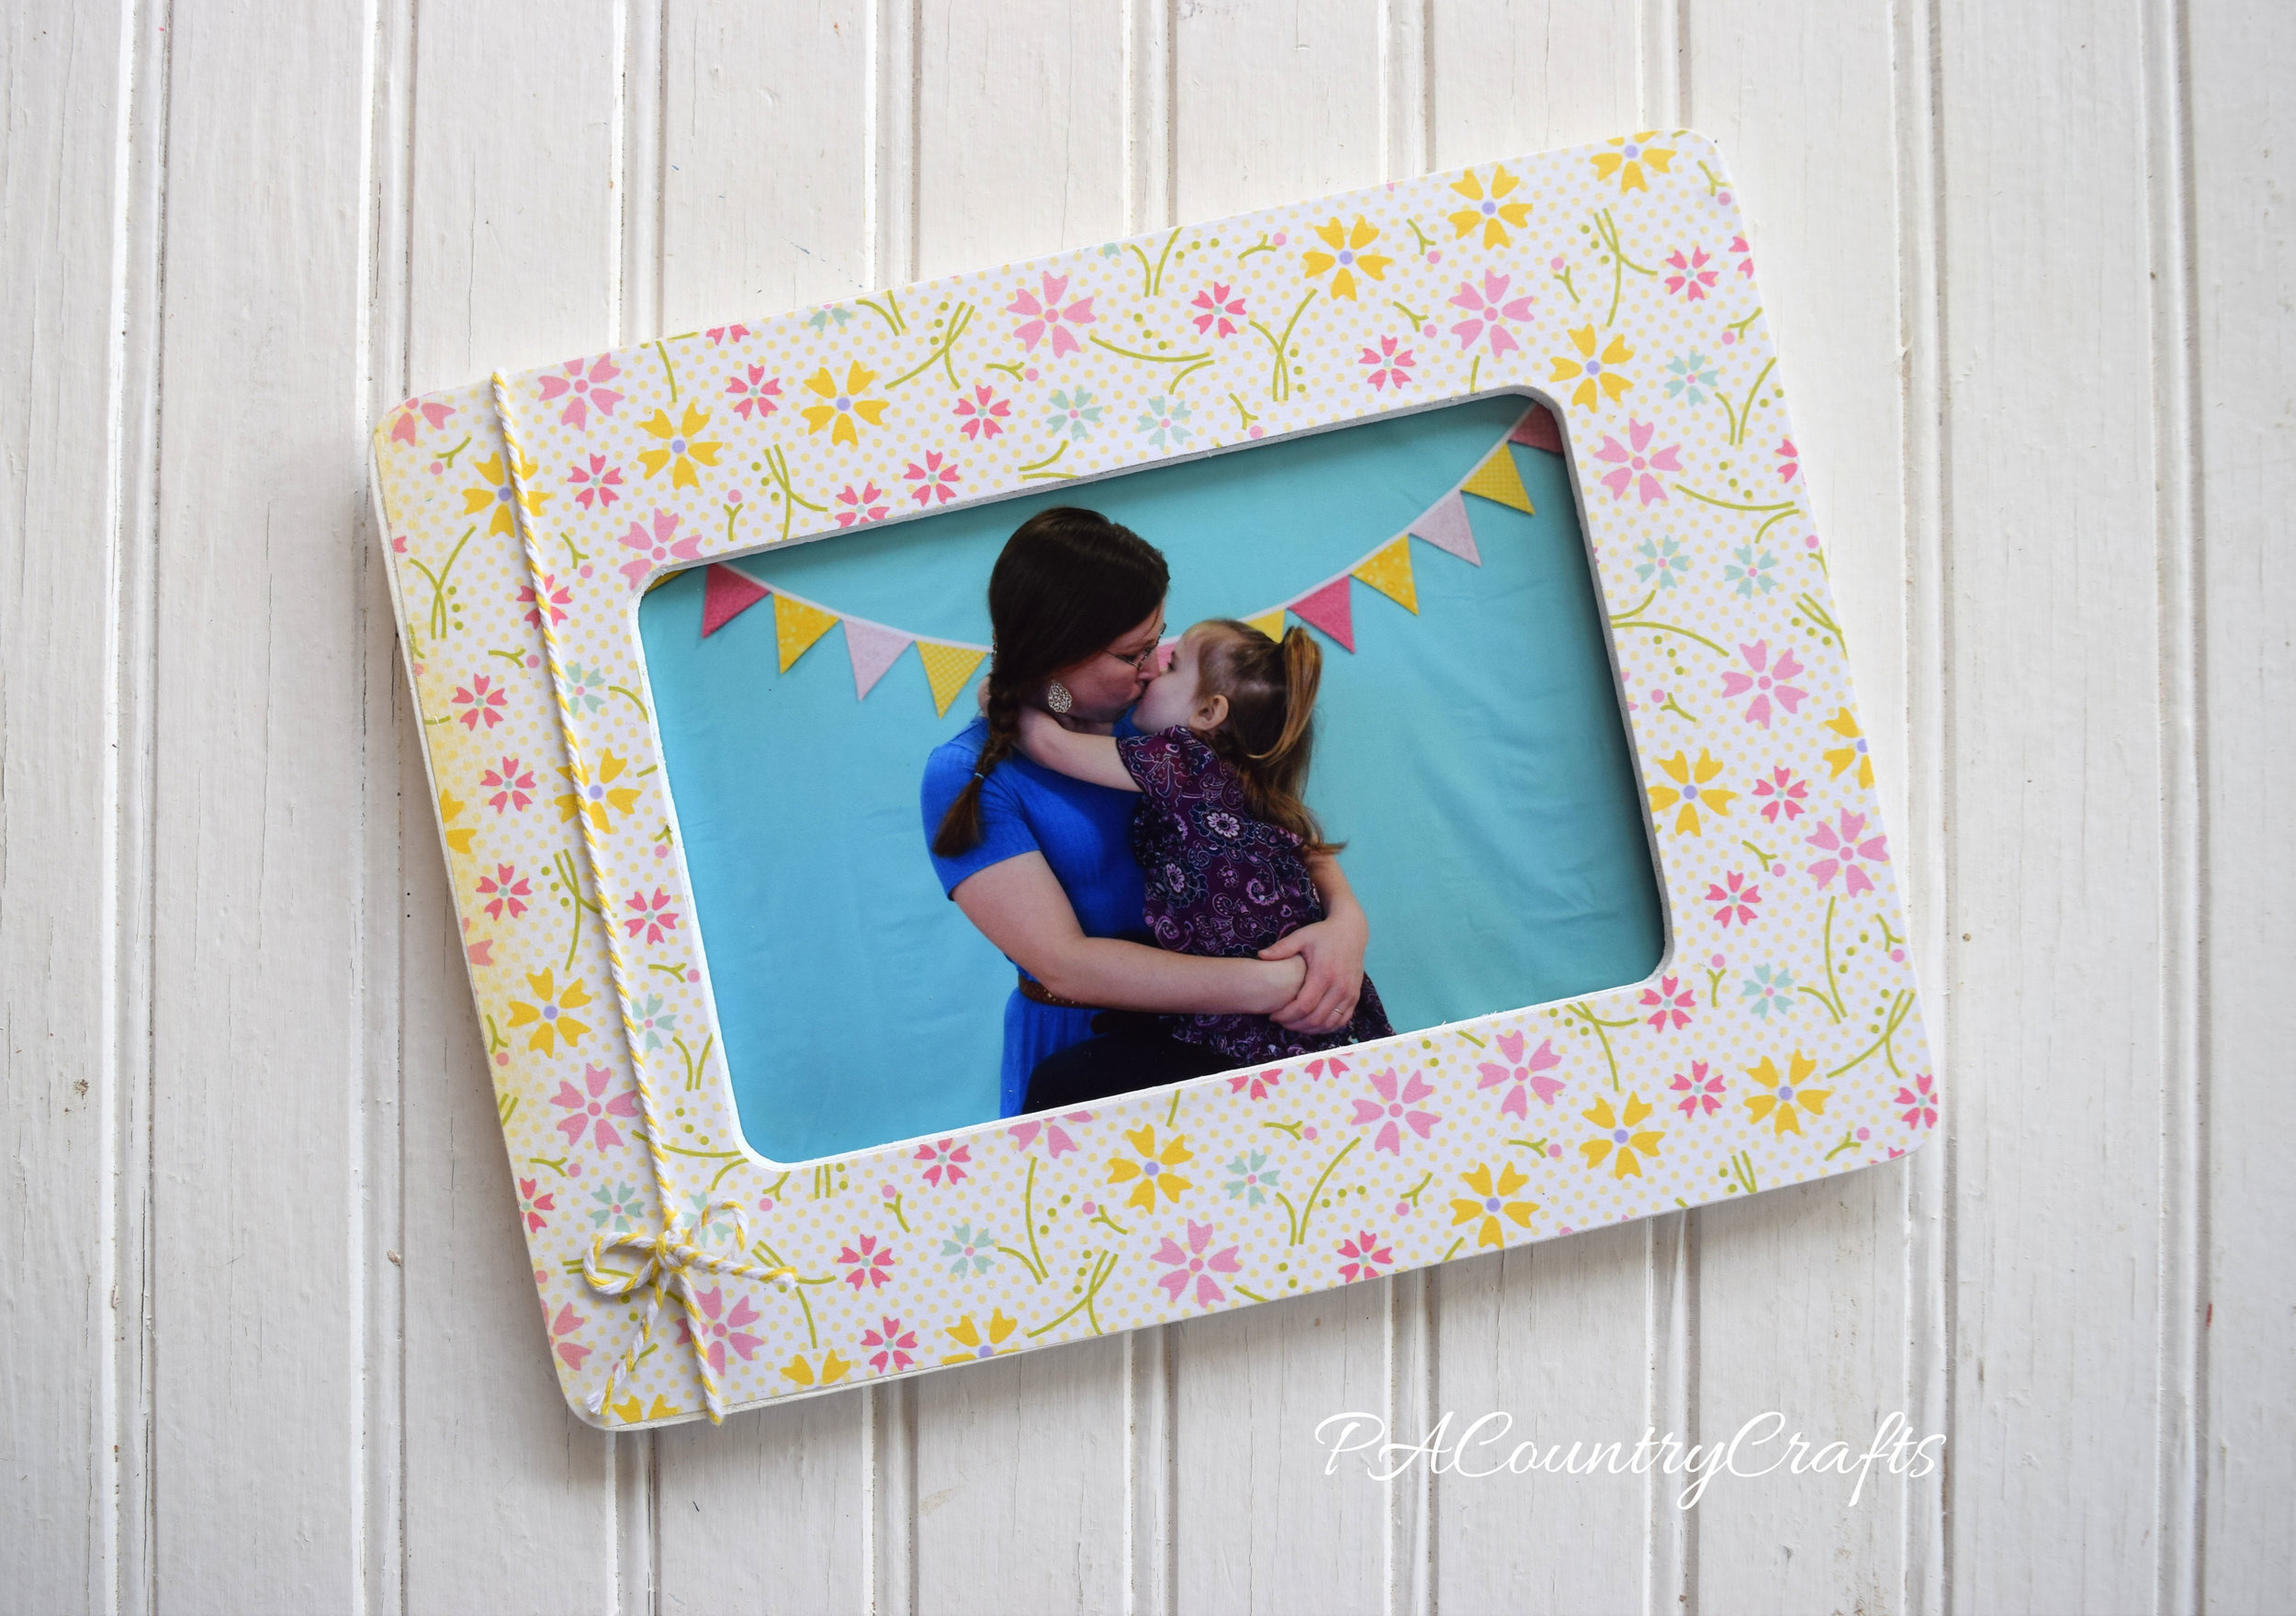 MOPS photo booth and picture frame craft